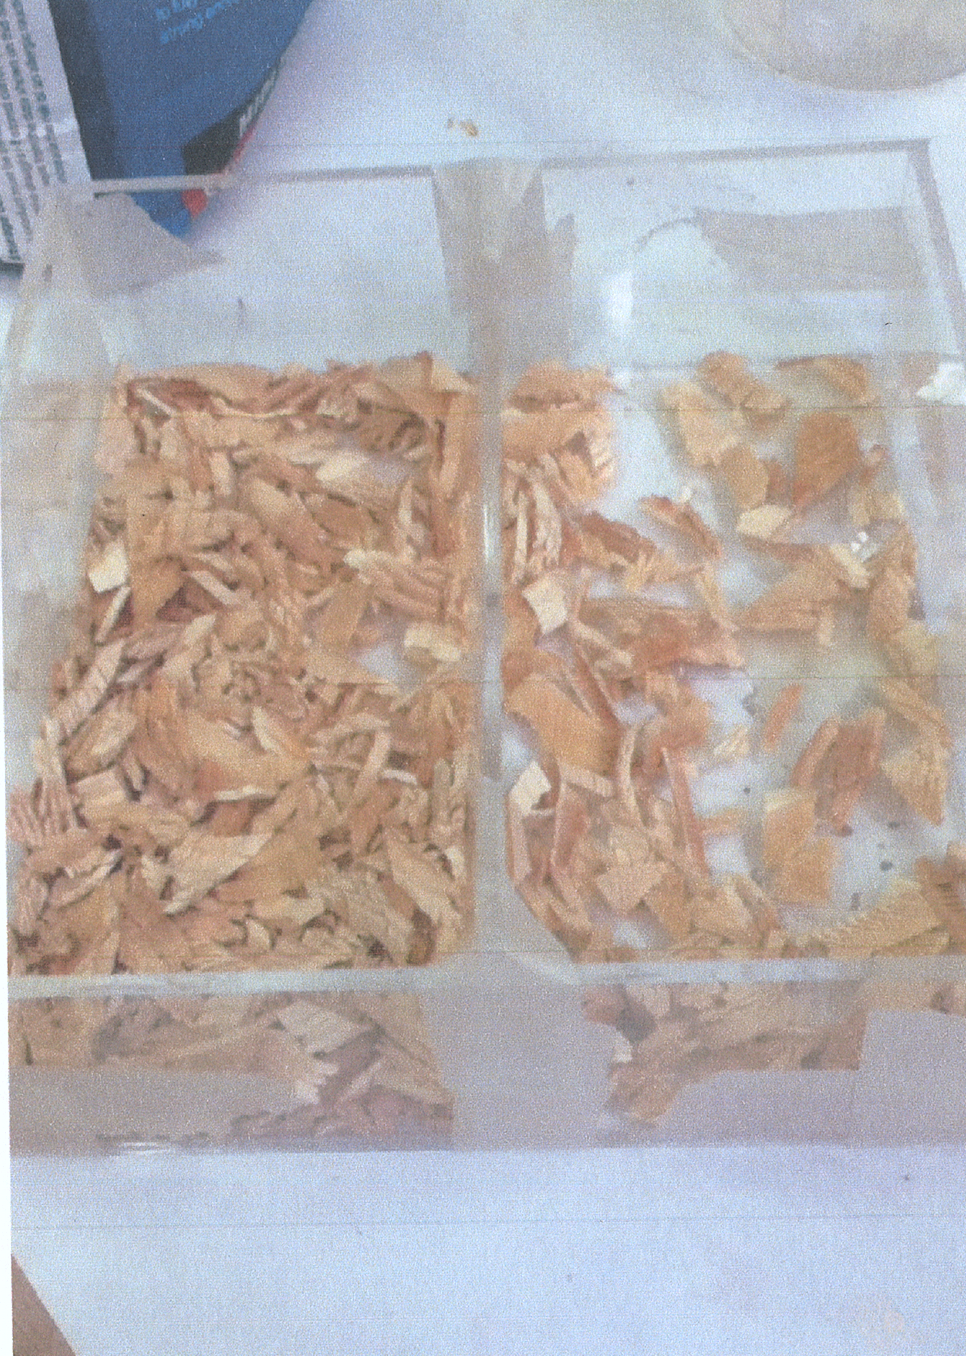 Wooden chips in cast chambers (experimenting with density of chips)